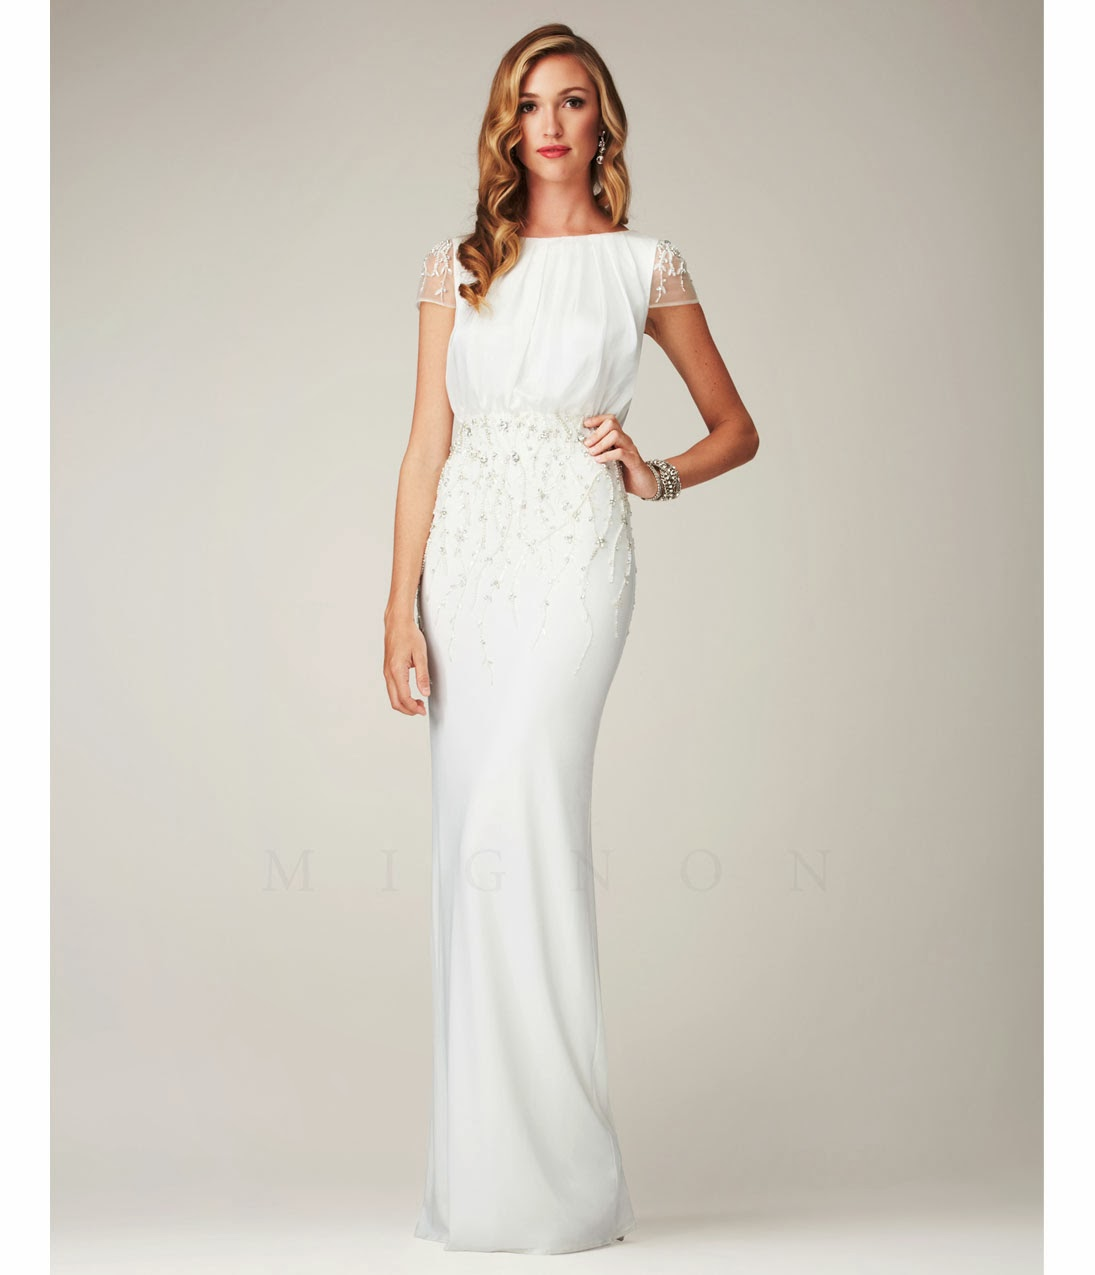 White Dress Pictures: February 2014